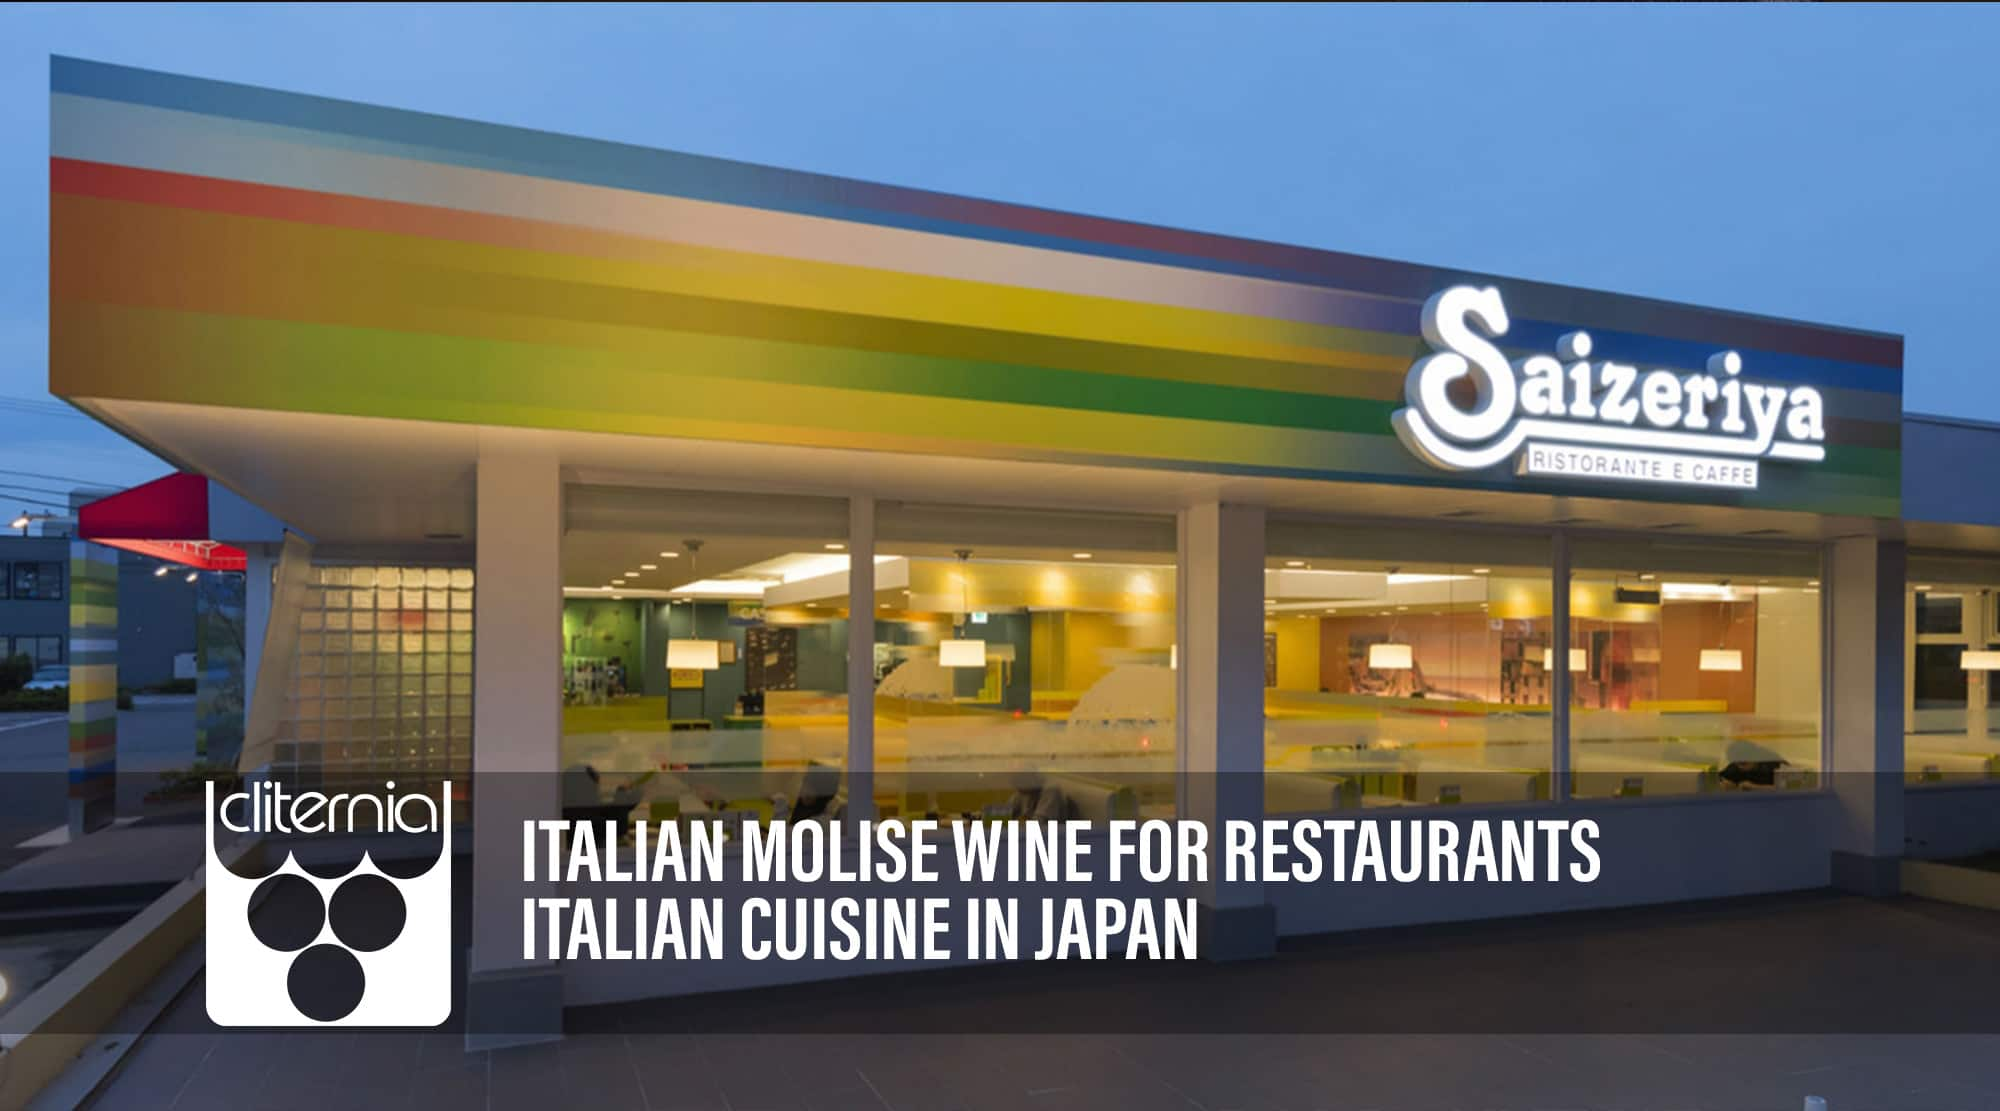 Saizeriya: Italy appeals to the Japanese